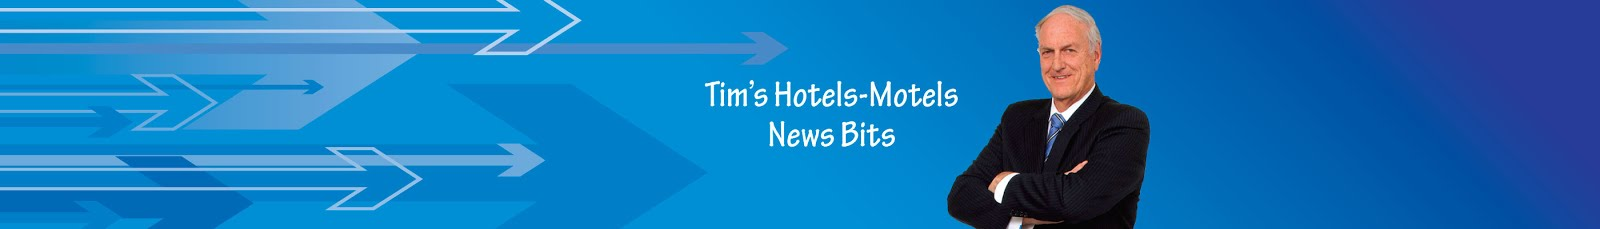 Tim's Hotel-Motel News Bits